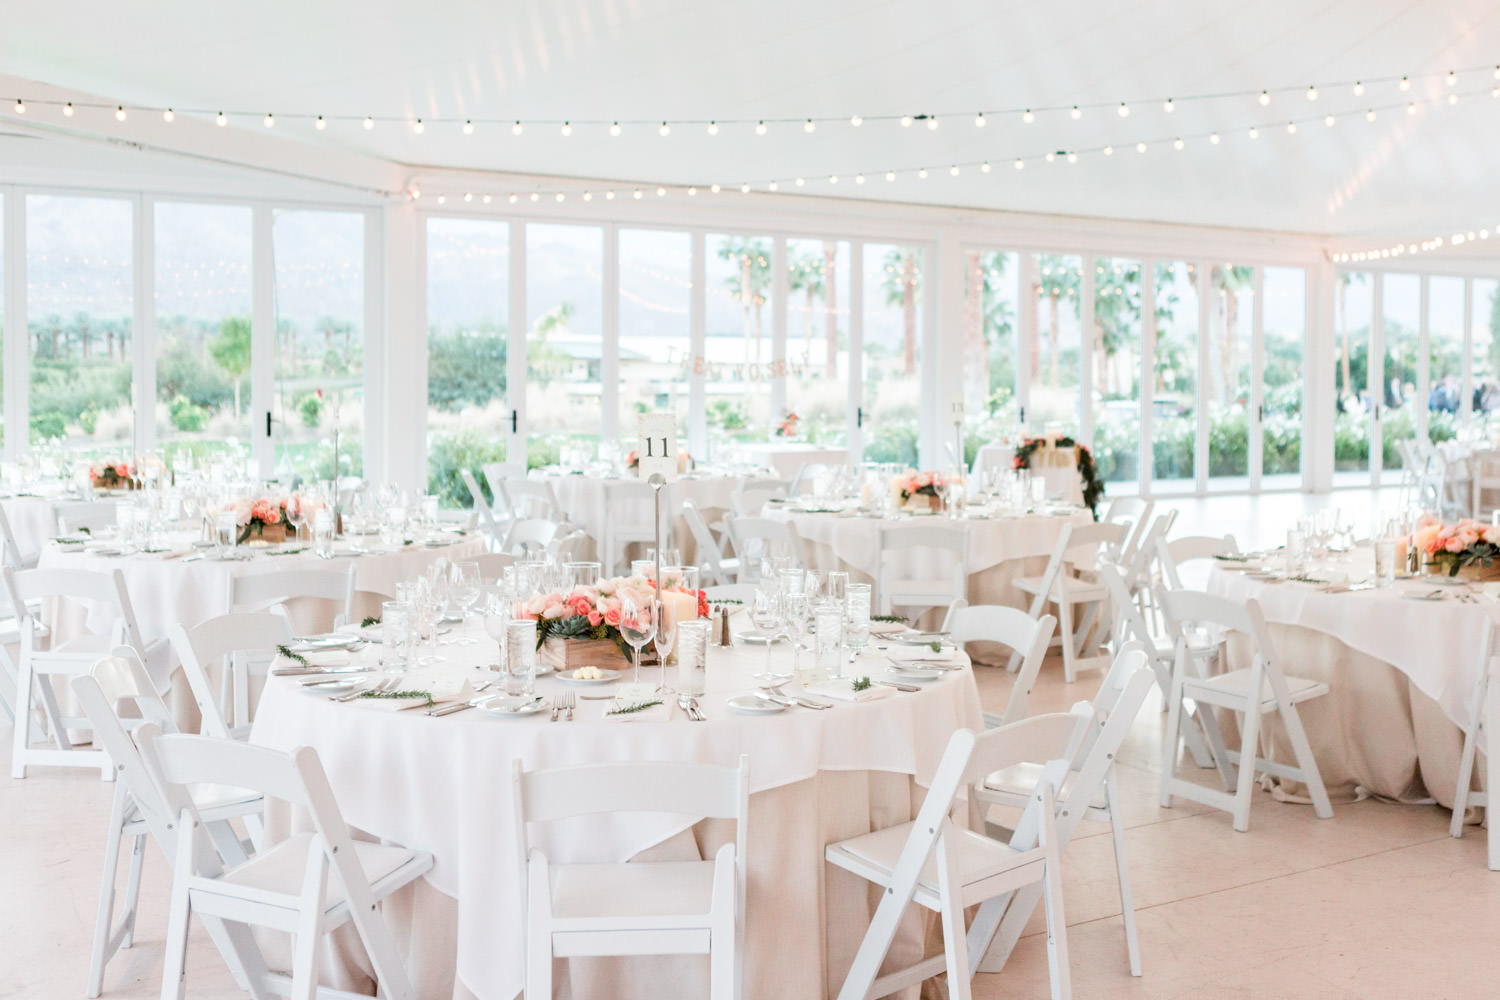 Indian Wells Golf Resort reception pavilion, white tables and chairs with pink and green arrangements, Cavin Elizabeth Photography